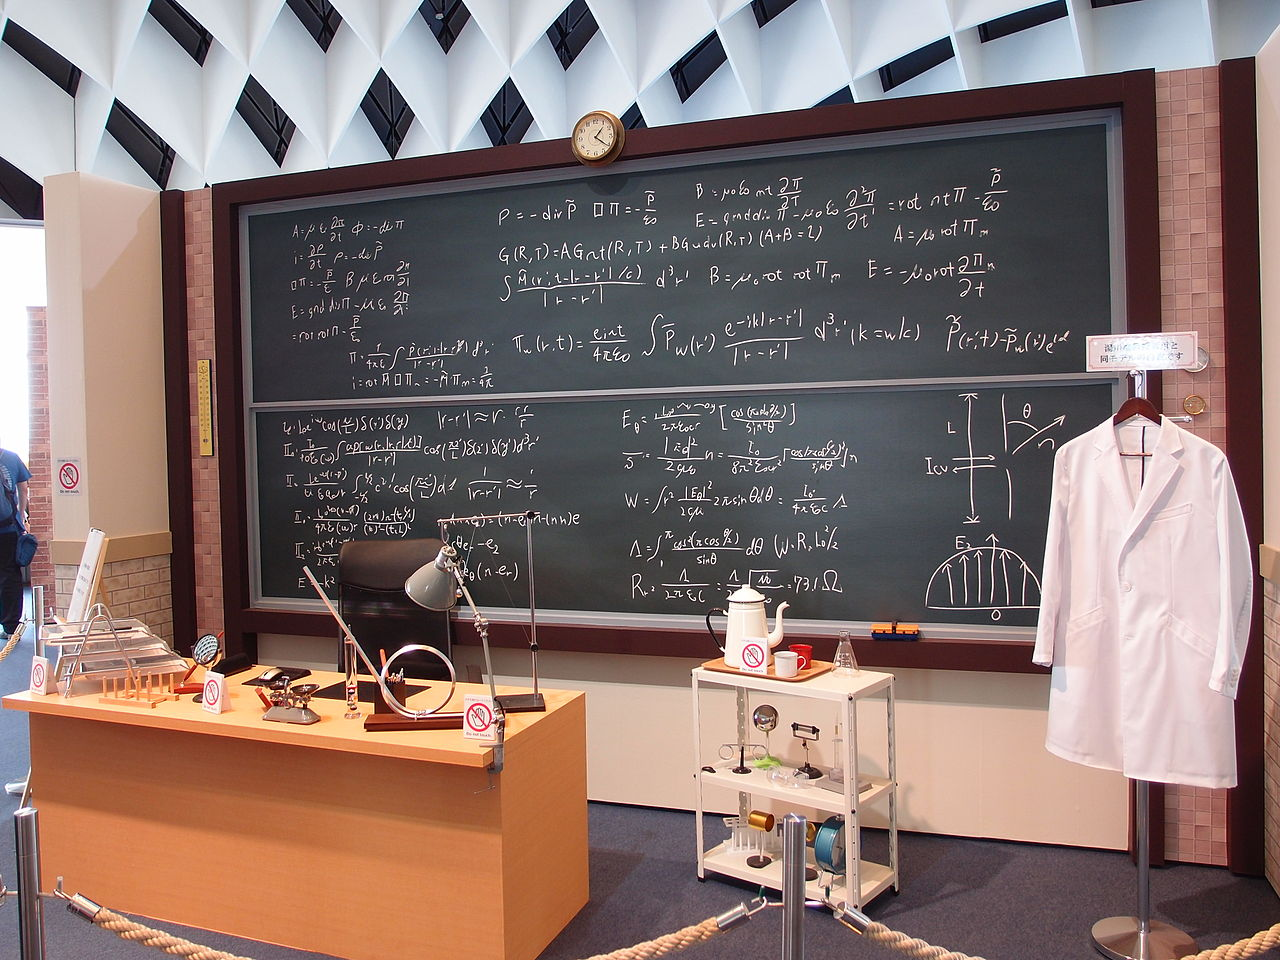 Classroom setup with blackboard with math formulas written on it, teacher's desk, and hanging lab coat